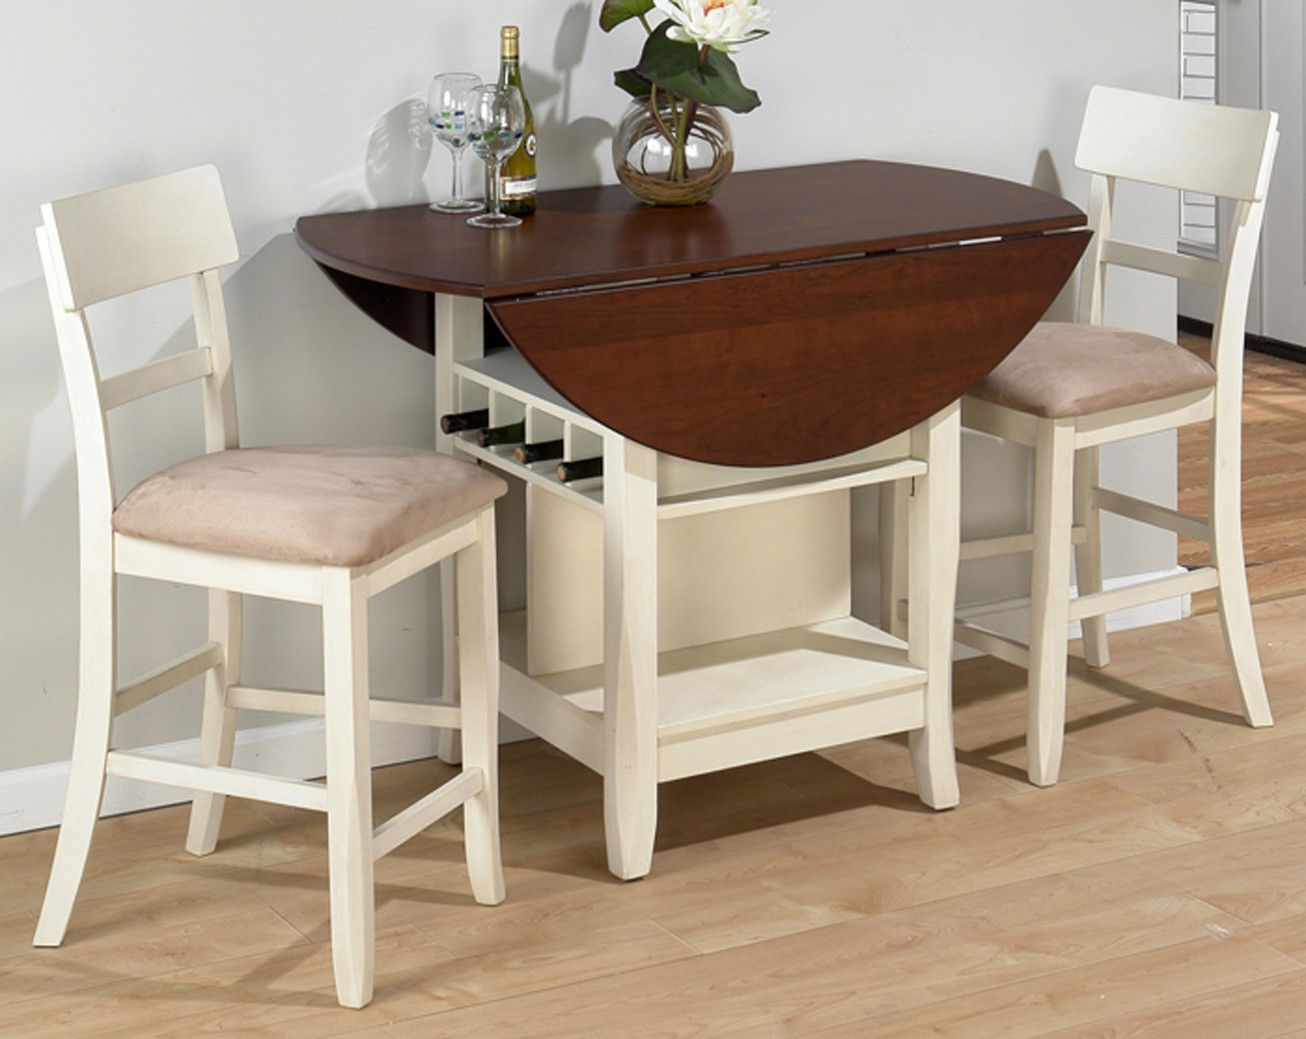 Compact Dining Space Arrangement With Drop Leaf Dining Table For Small Spaces